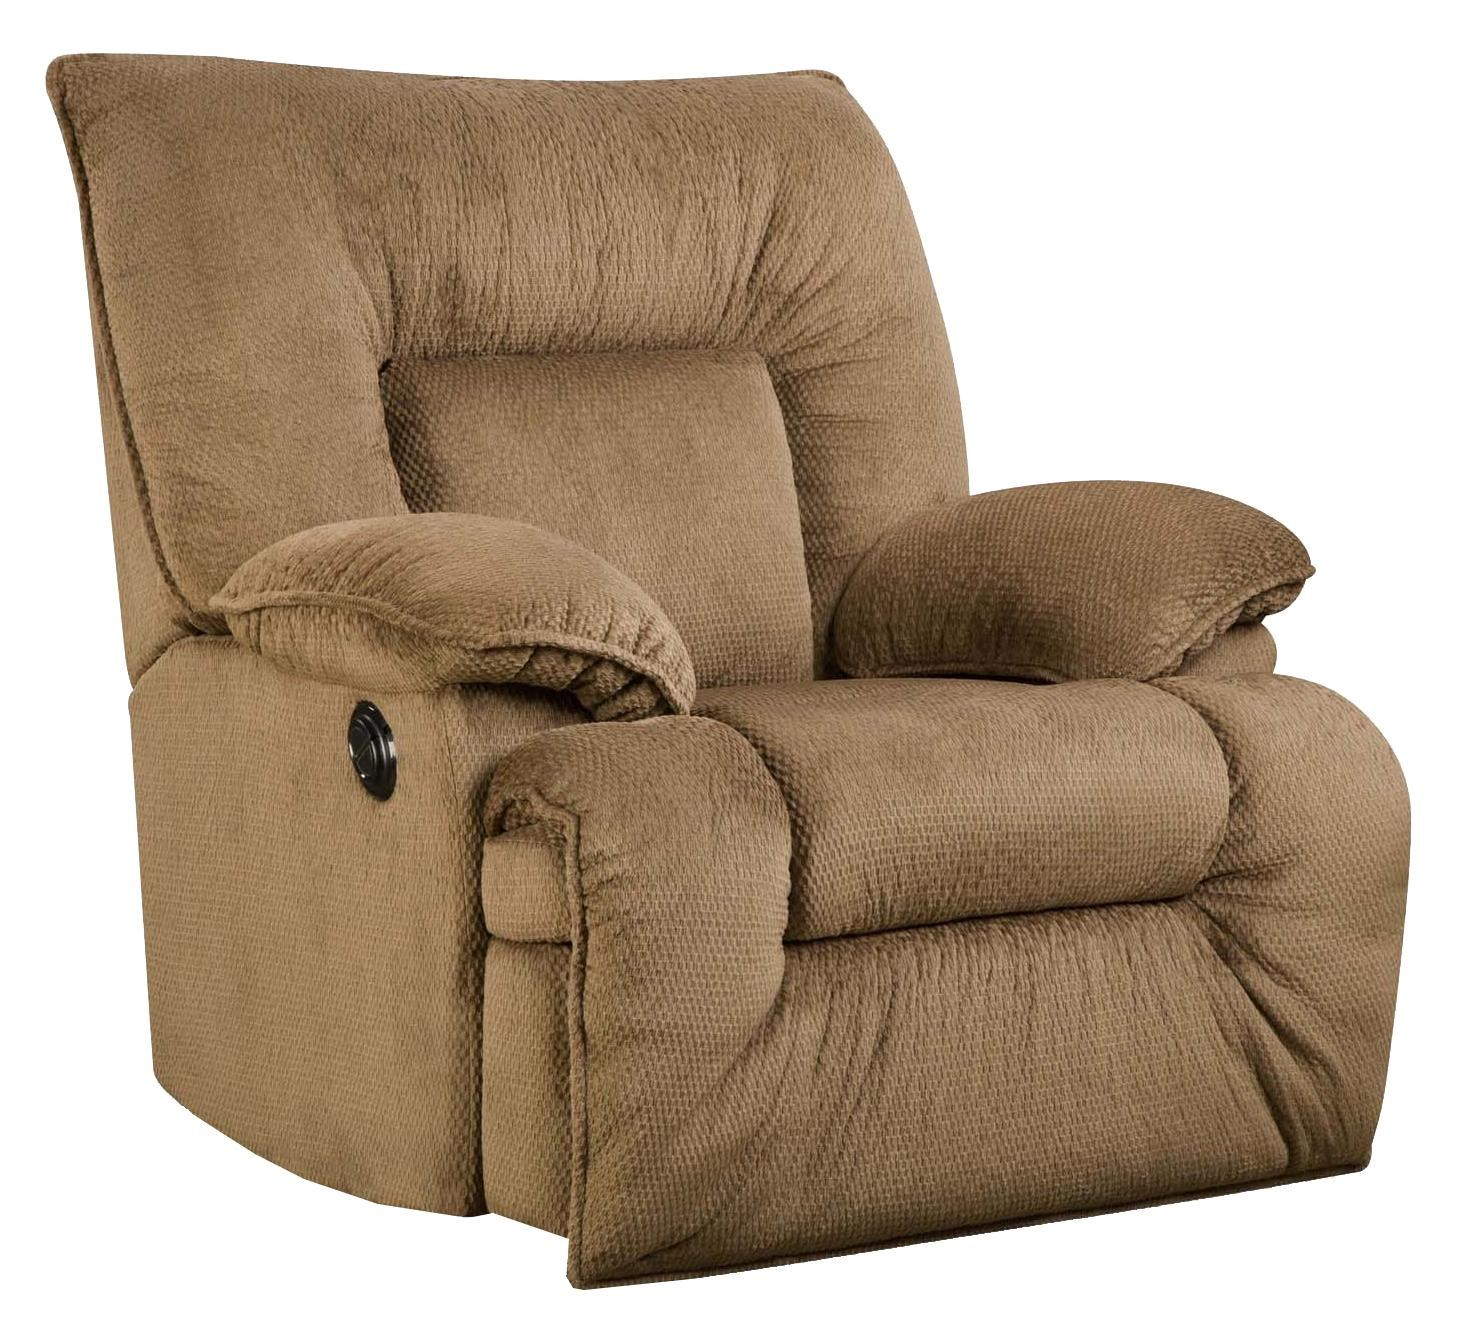 oldbrick furniture. franklin recliners hamilton wall recliner with casual style old brick furniture three way oldbrick